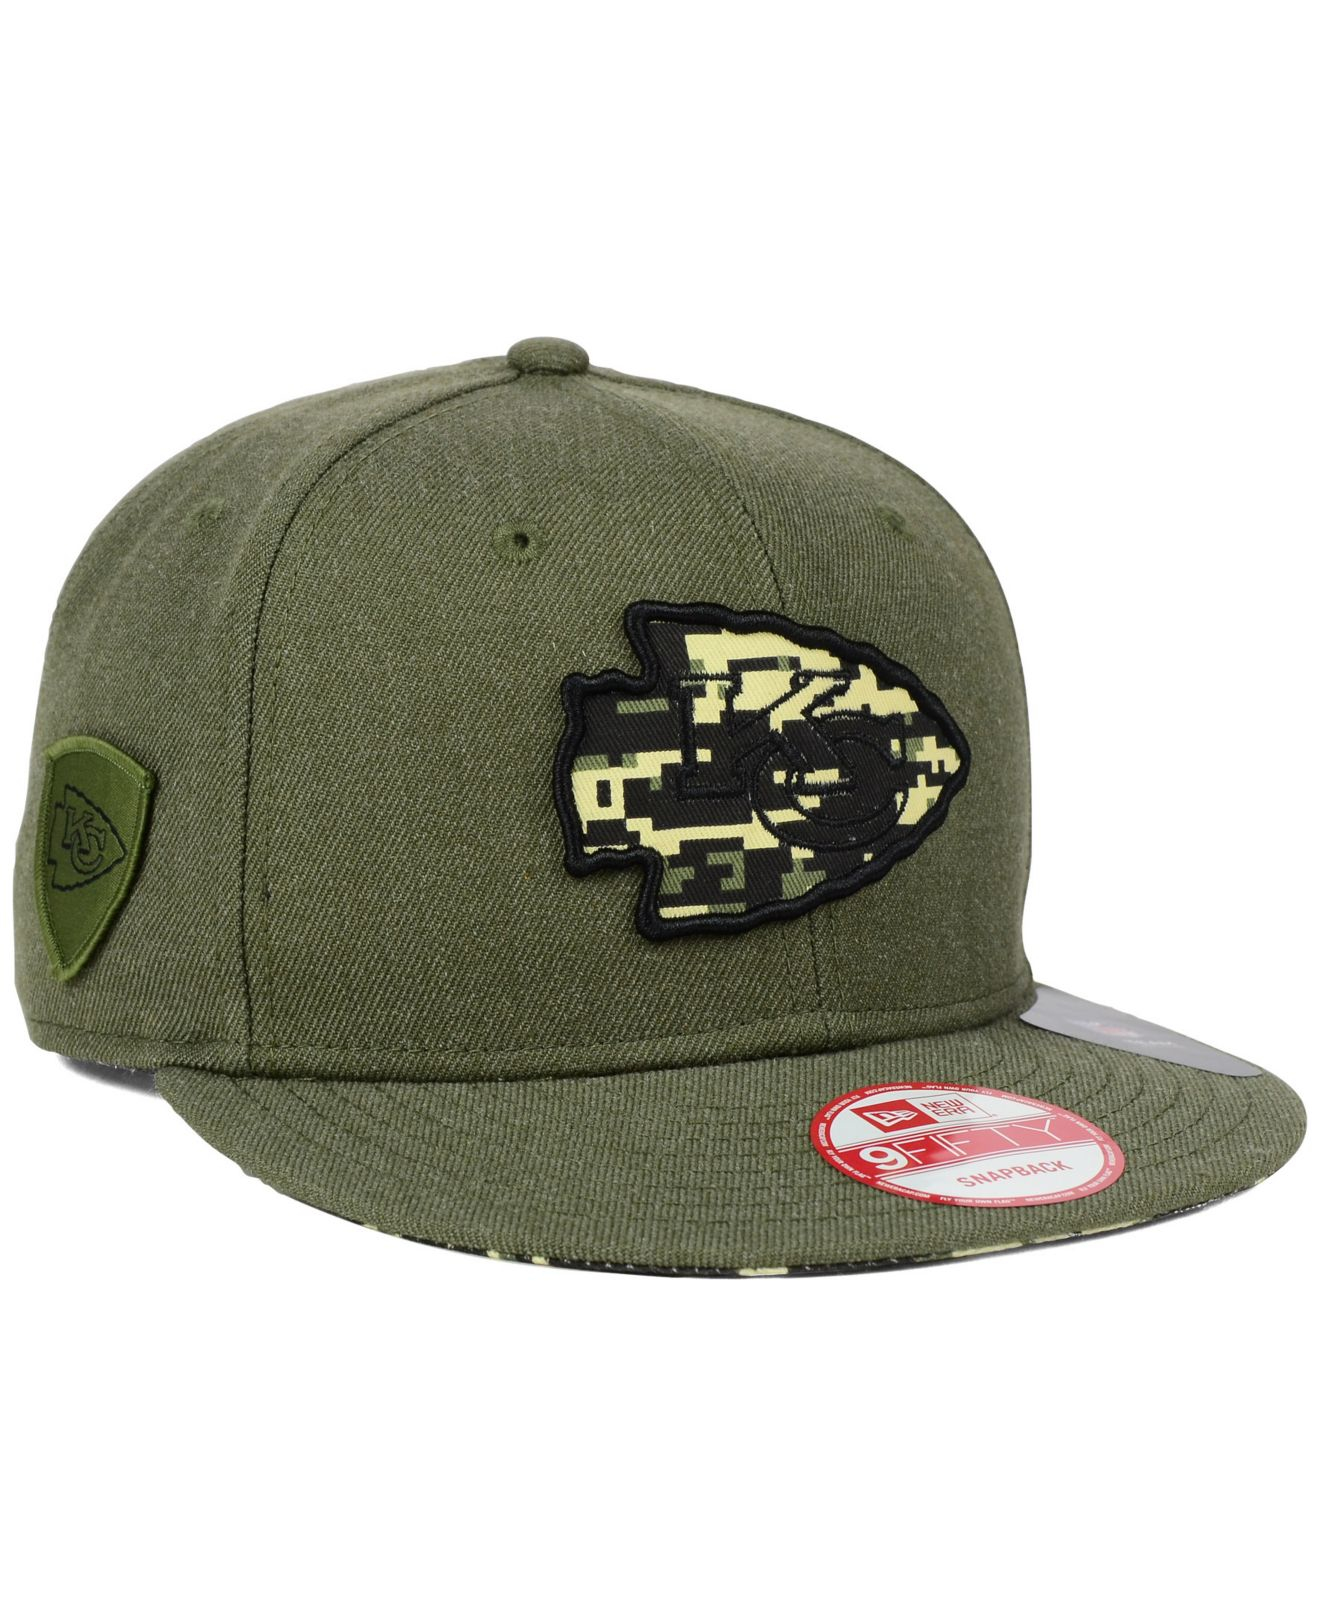 Ktz Kansas City Chiefs Camo 9fifty Snapback Cap In Green